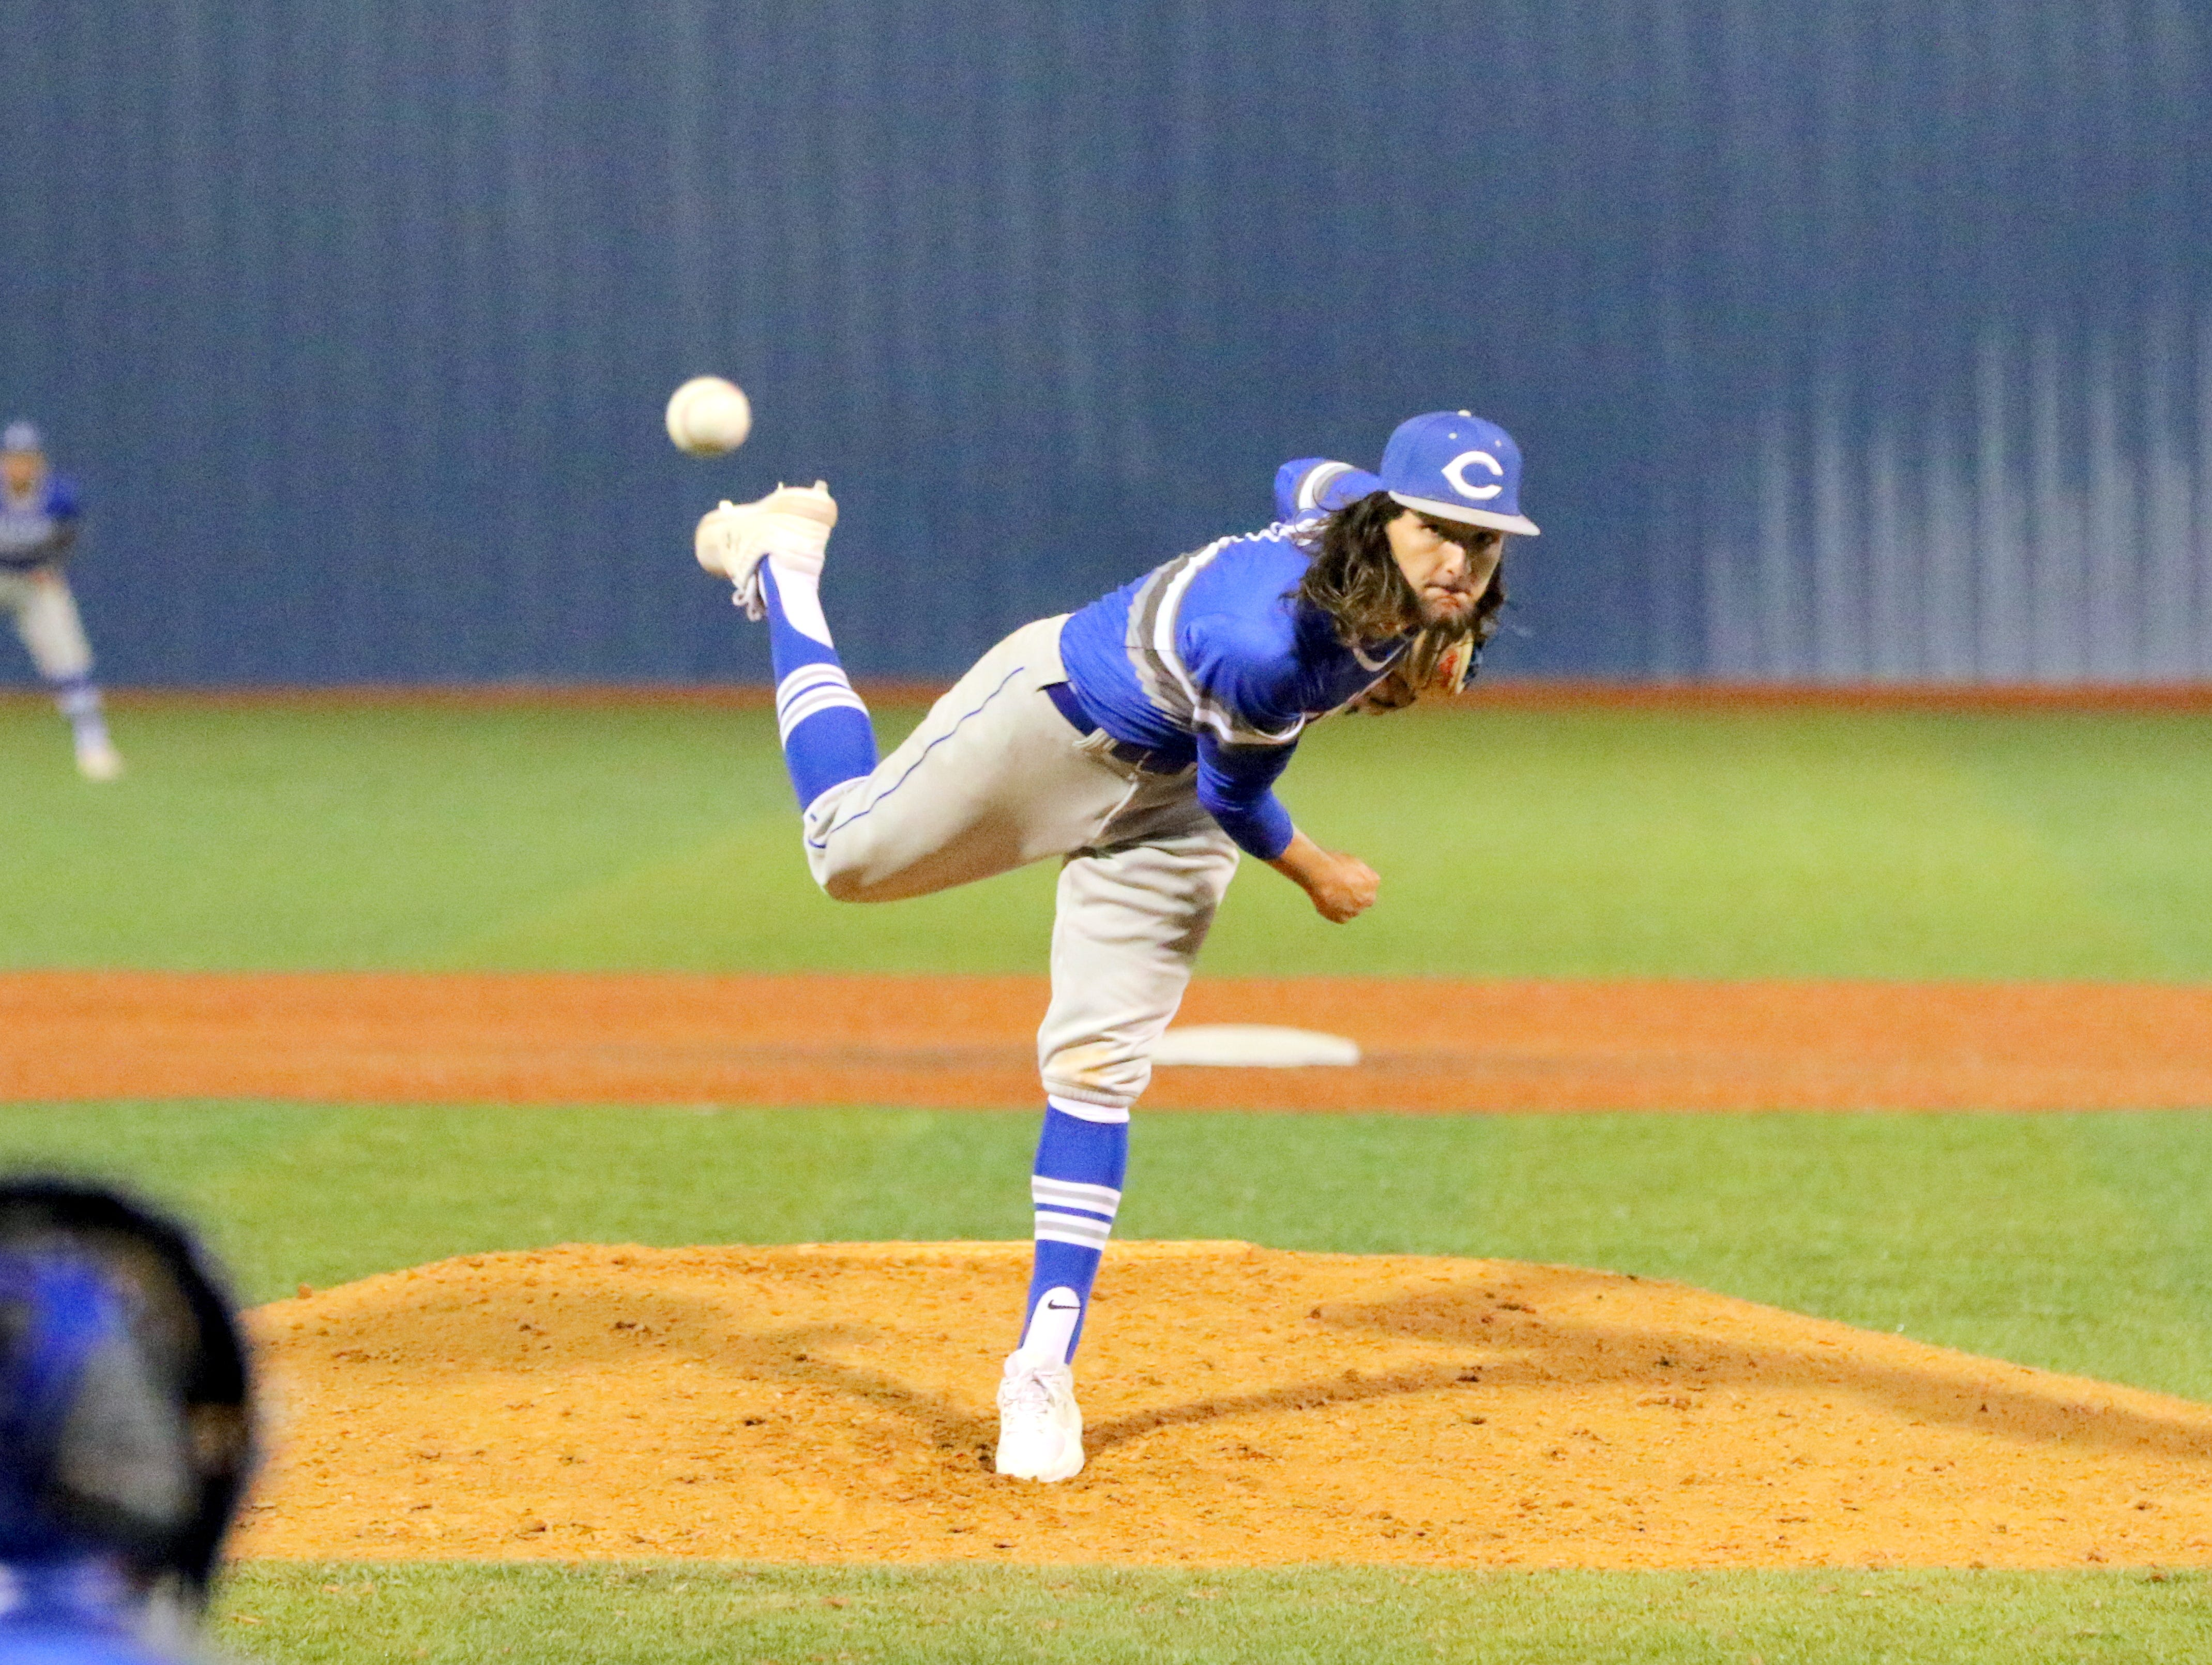 Josh Echavaria pitches against Ruidoso in the third inning of Friday's game. Carlsbad won, 10-0 in six innings.